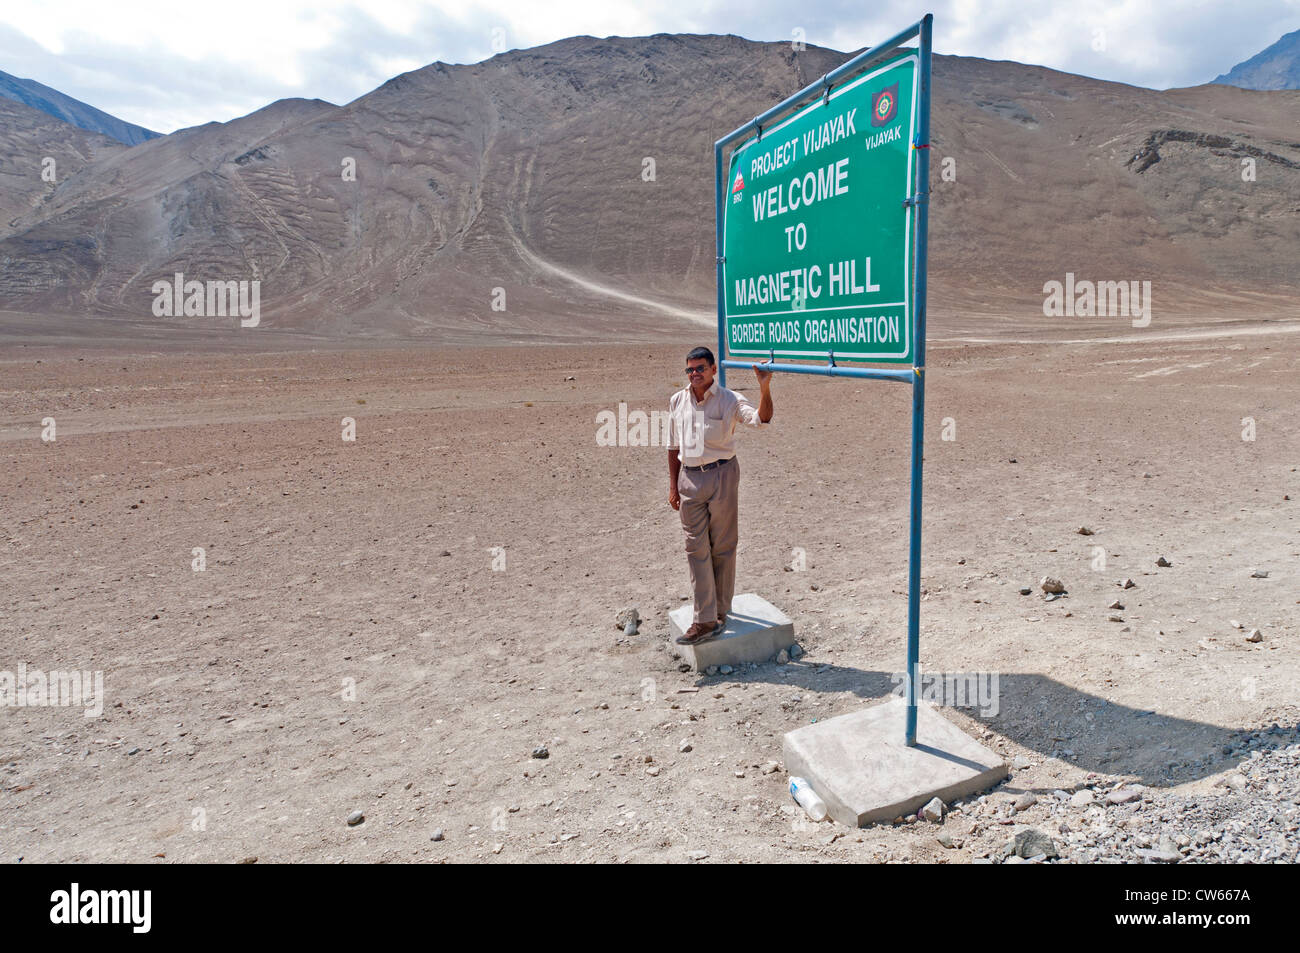 Indian man standing by the Welcome to Magnetic Hill sign on the Leh-Kargil-Srinagar Highway, Ladakh, India - Stock Image